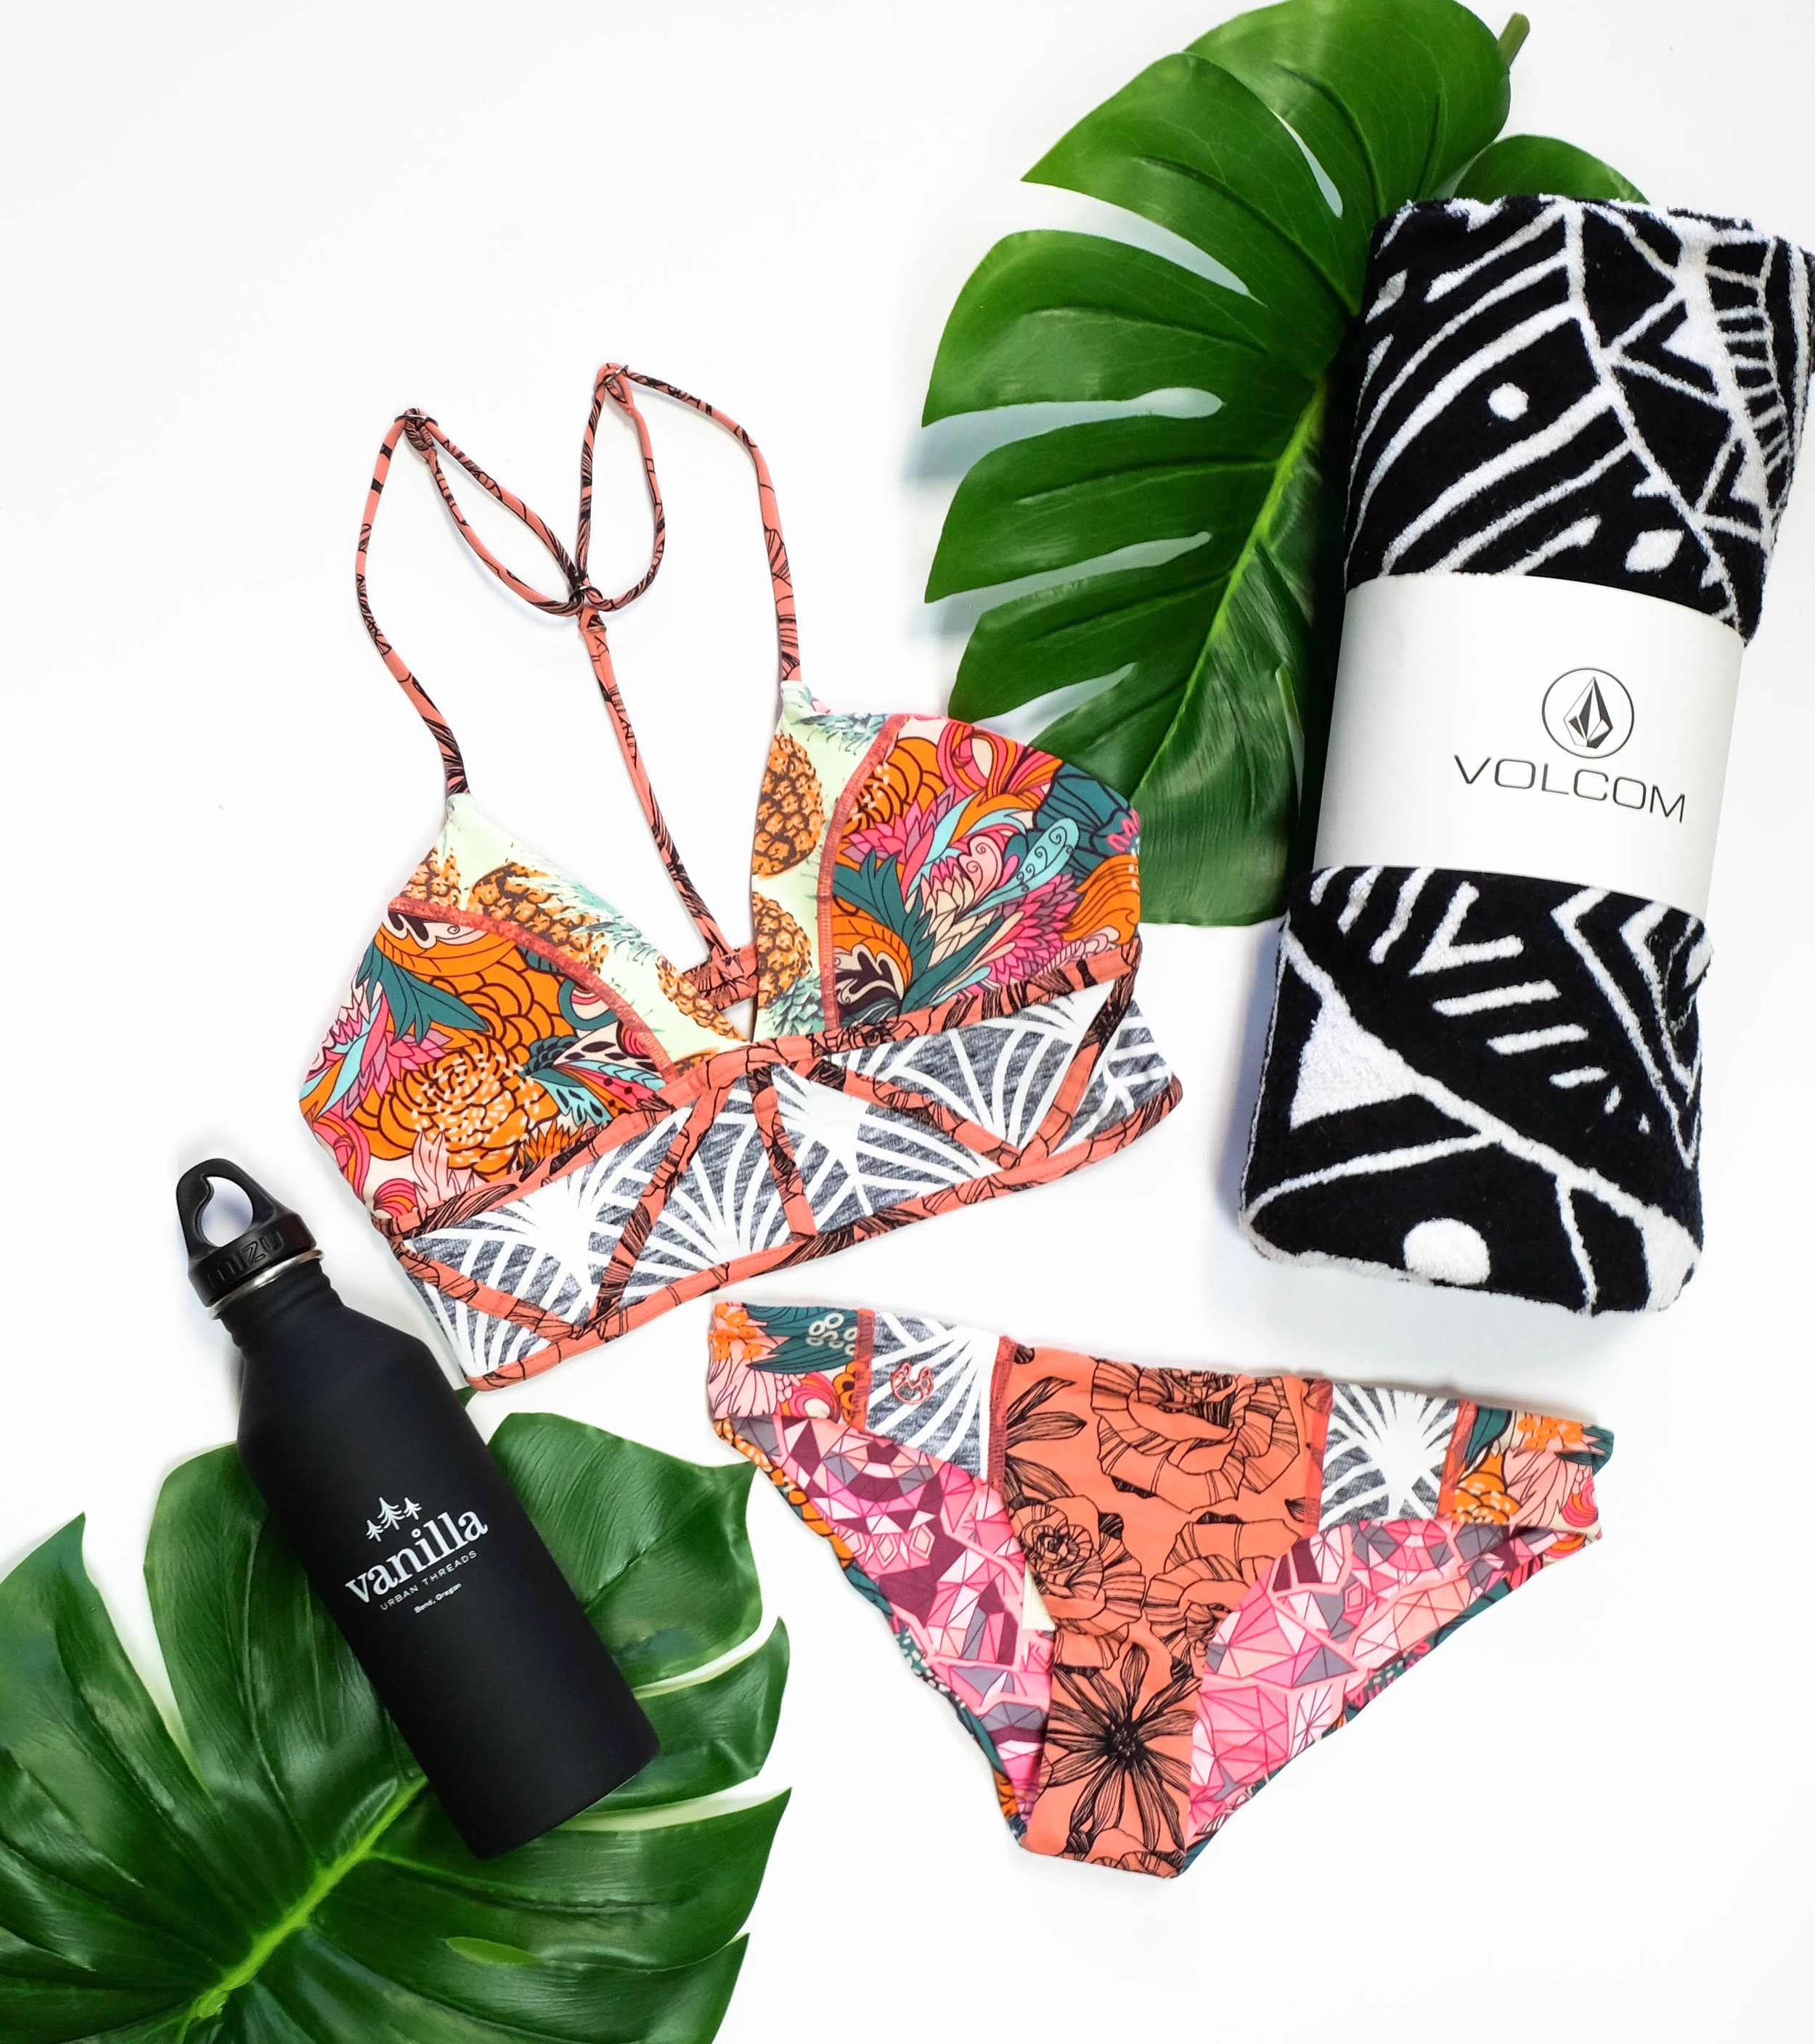 "Pictured : Maaji Swim Top Maji Swim Bottom Volcom Towel Vanilla (Mizu) Water Bottle  Okay it's day one and you're off on an adventure, what do you wear? I'm glad you asked. You can't go wrong with a cute little graphic tee and some shorts! This lightweight ""La Playa"" tee by Amuse is most fitting for your Mexico retreat (we have other sayings and colors in store too)! Now lets talk about these shorts, Blank just made a pair of basic shorts, your new favorite summer statement piece! All the cuteness isn't just in the front either, there's a little embroidery on the bum too. ;) My go-to shoes will forever be Vans so why not add a pop of coral with some high tops?!"